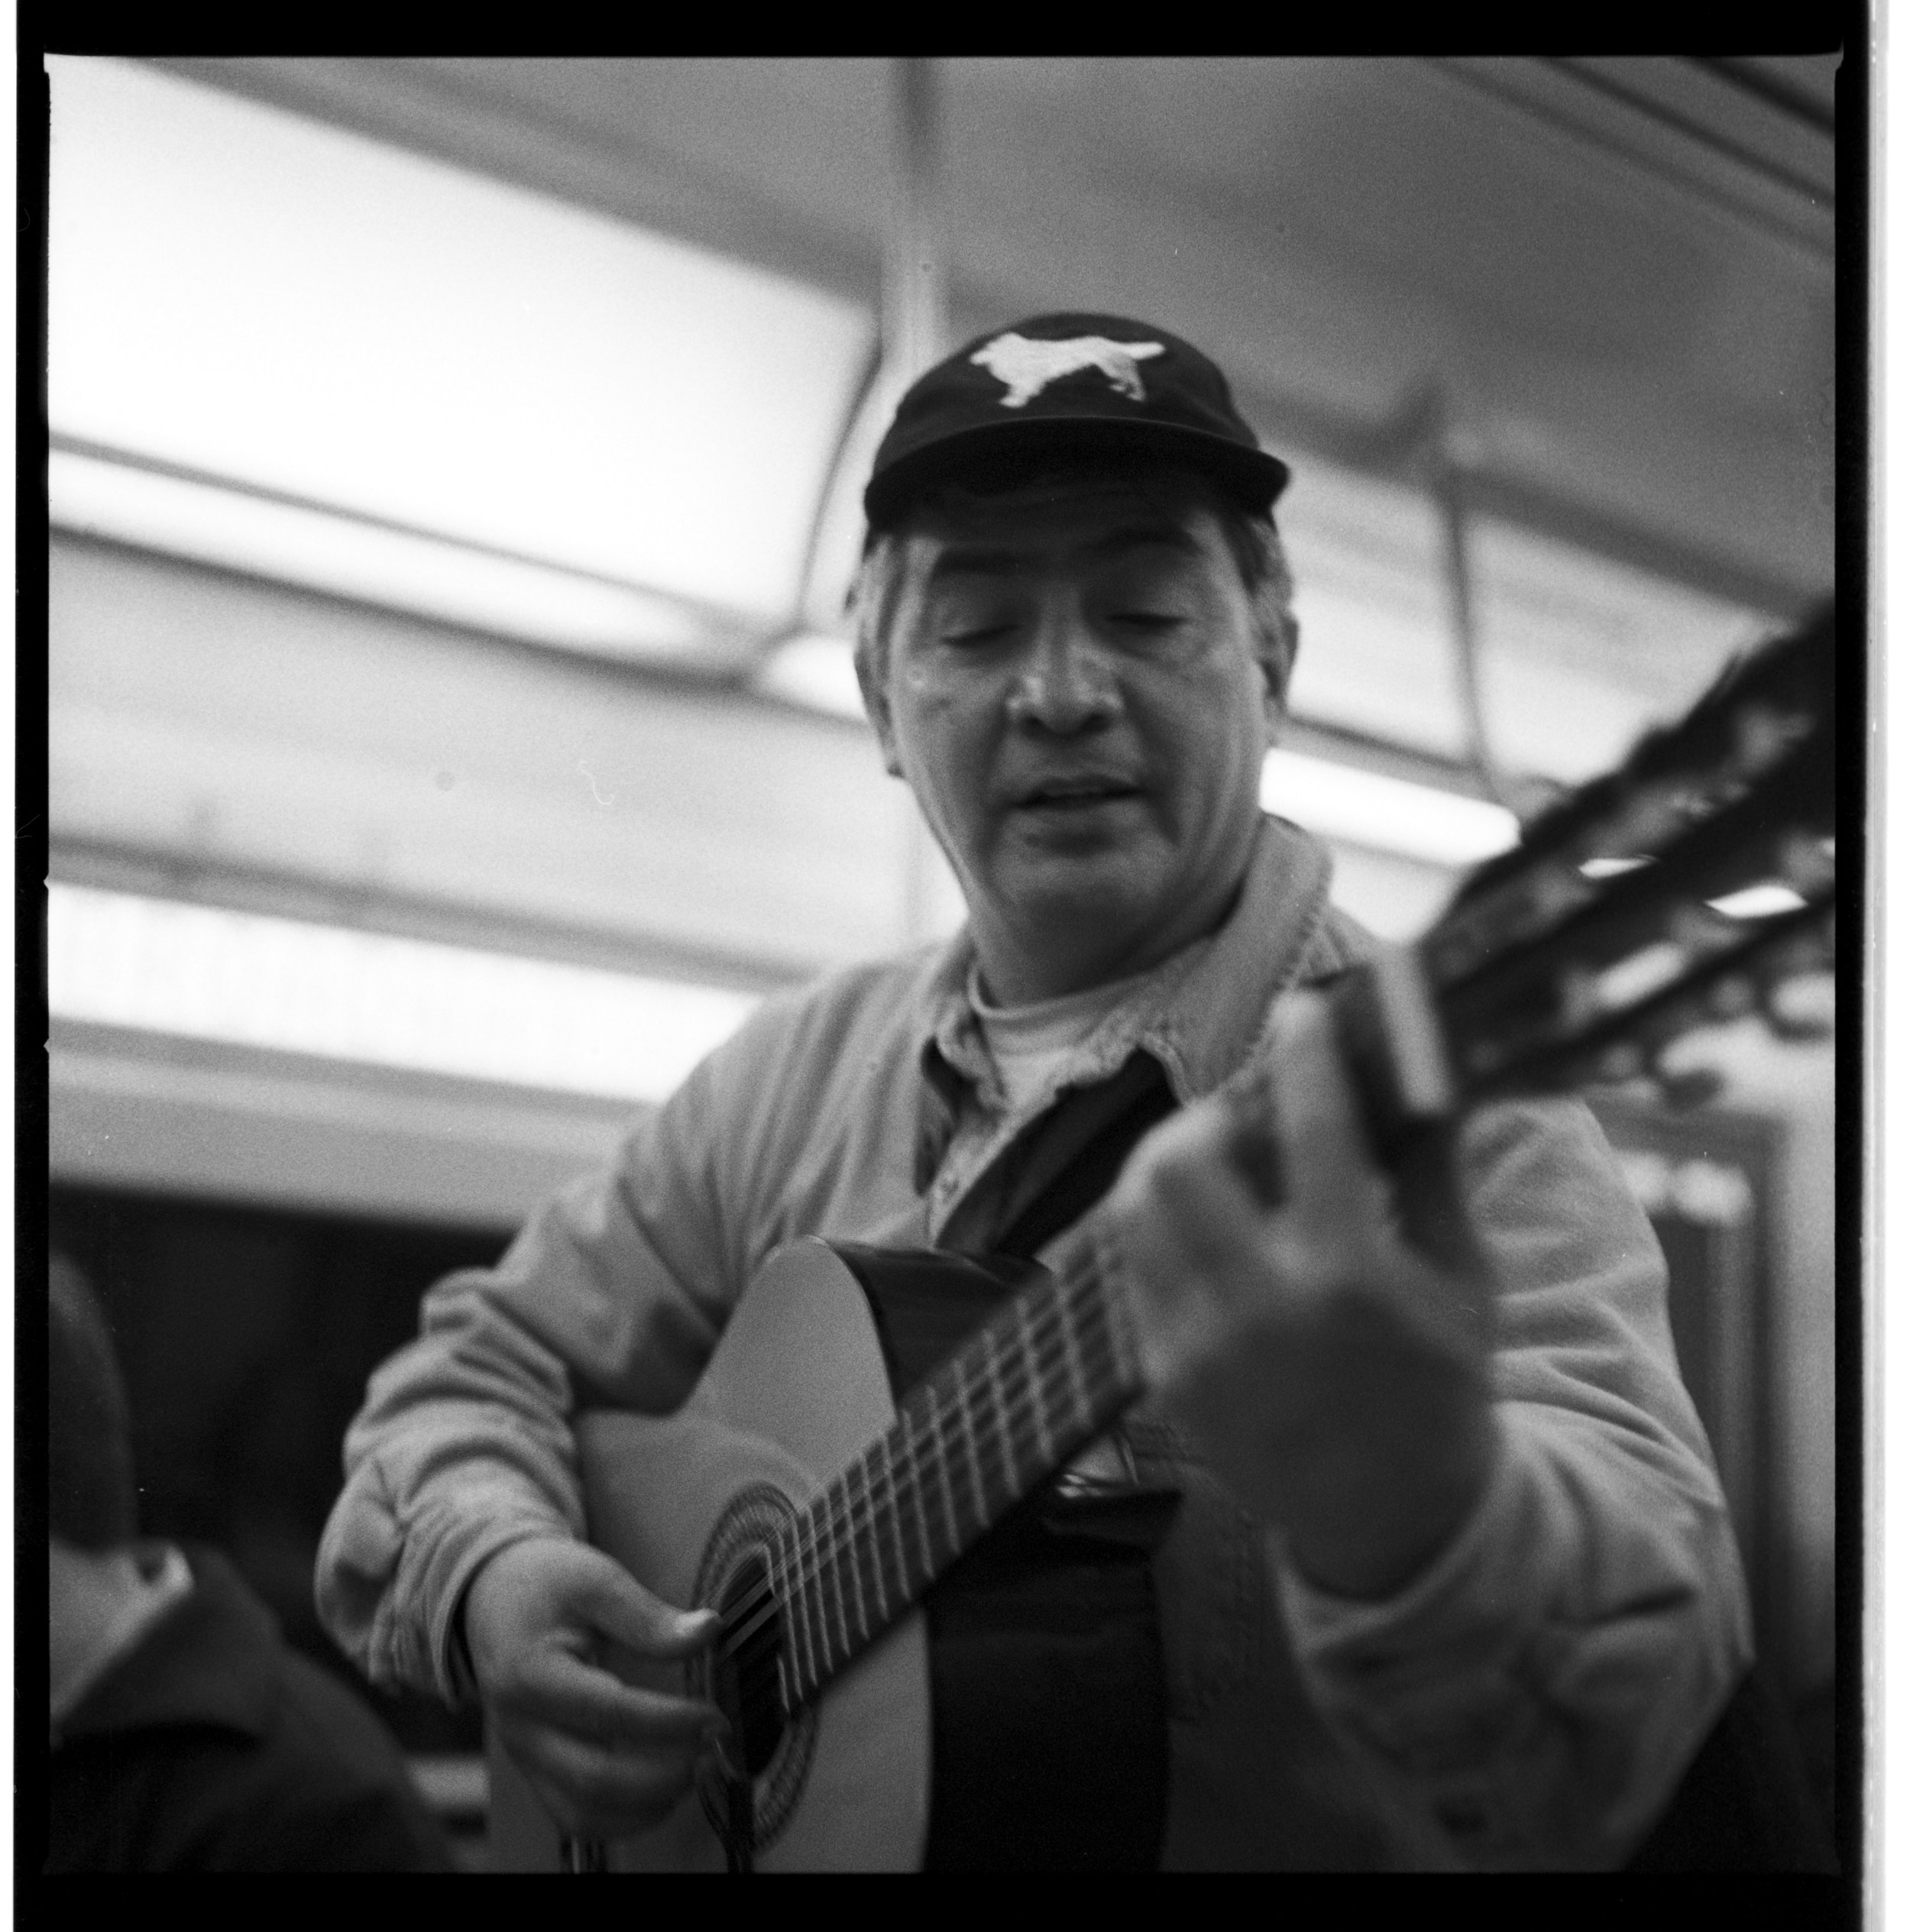 Serenade Subway